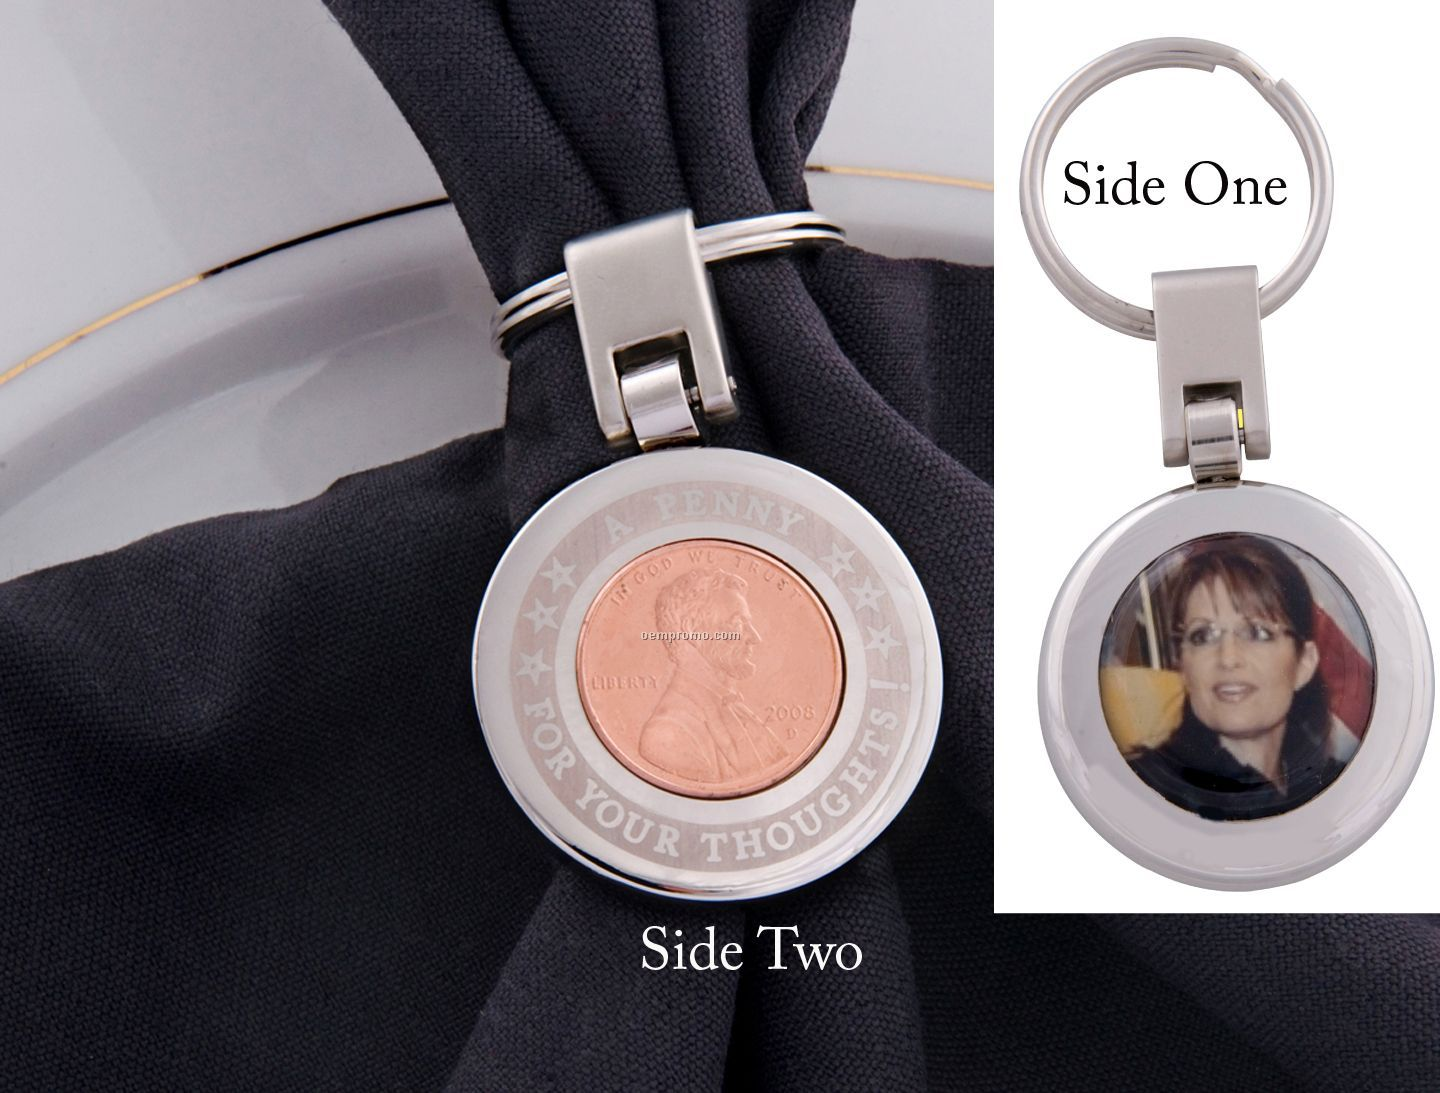 Shiny Round Key Ring With Penny Embedment, Reverse Side With 4 Color Proces